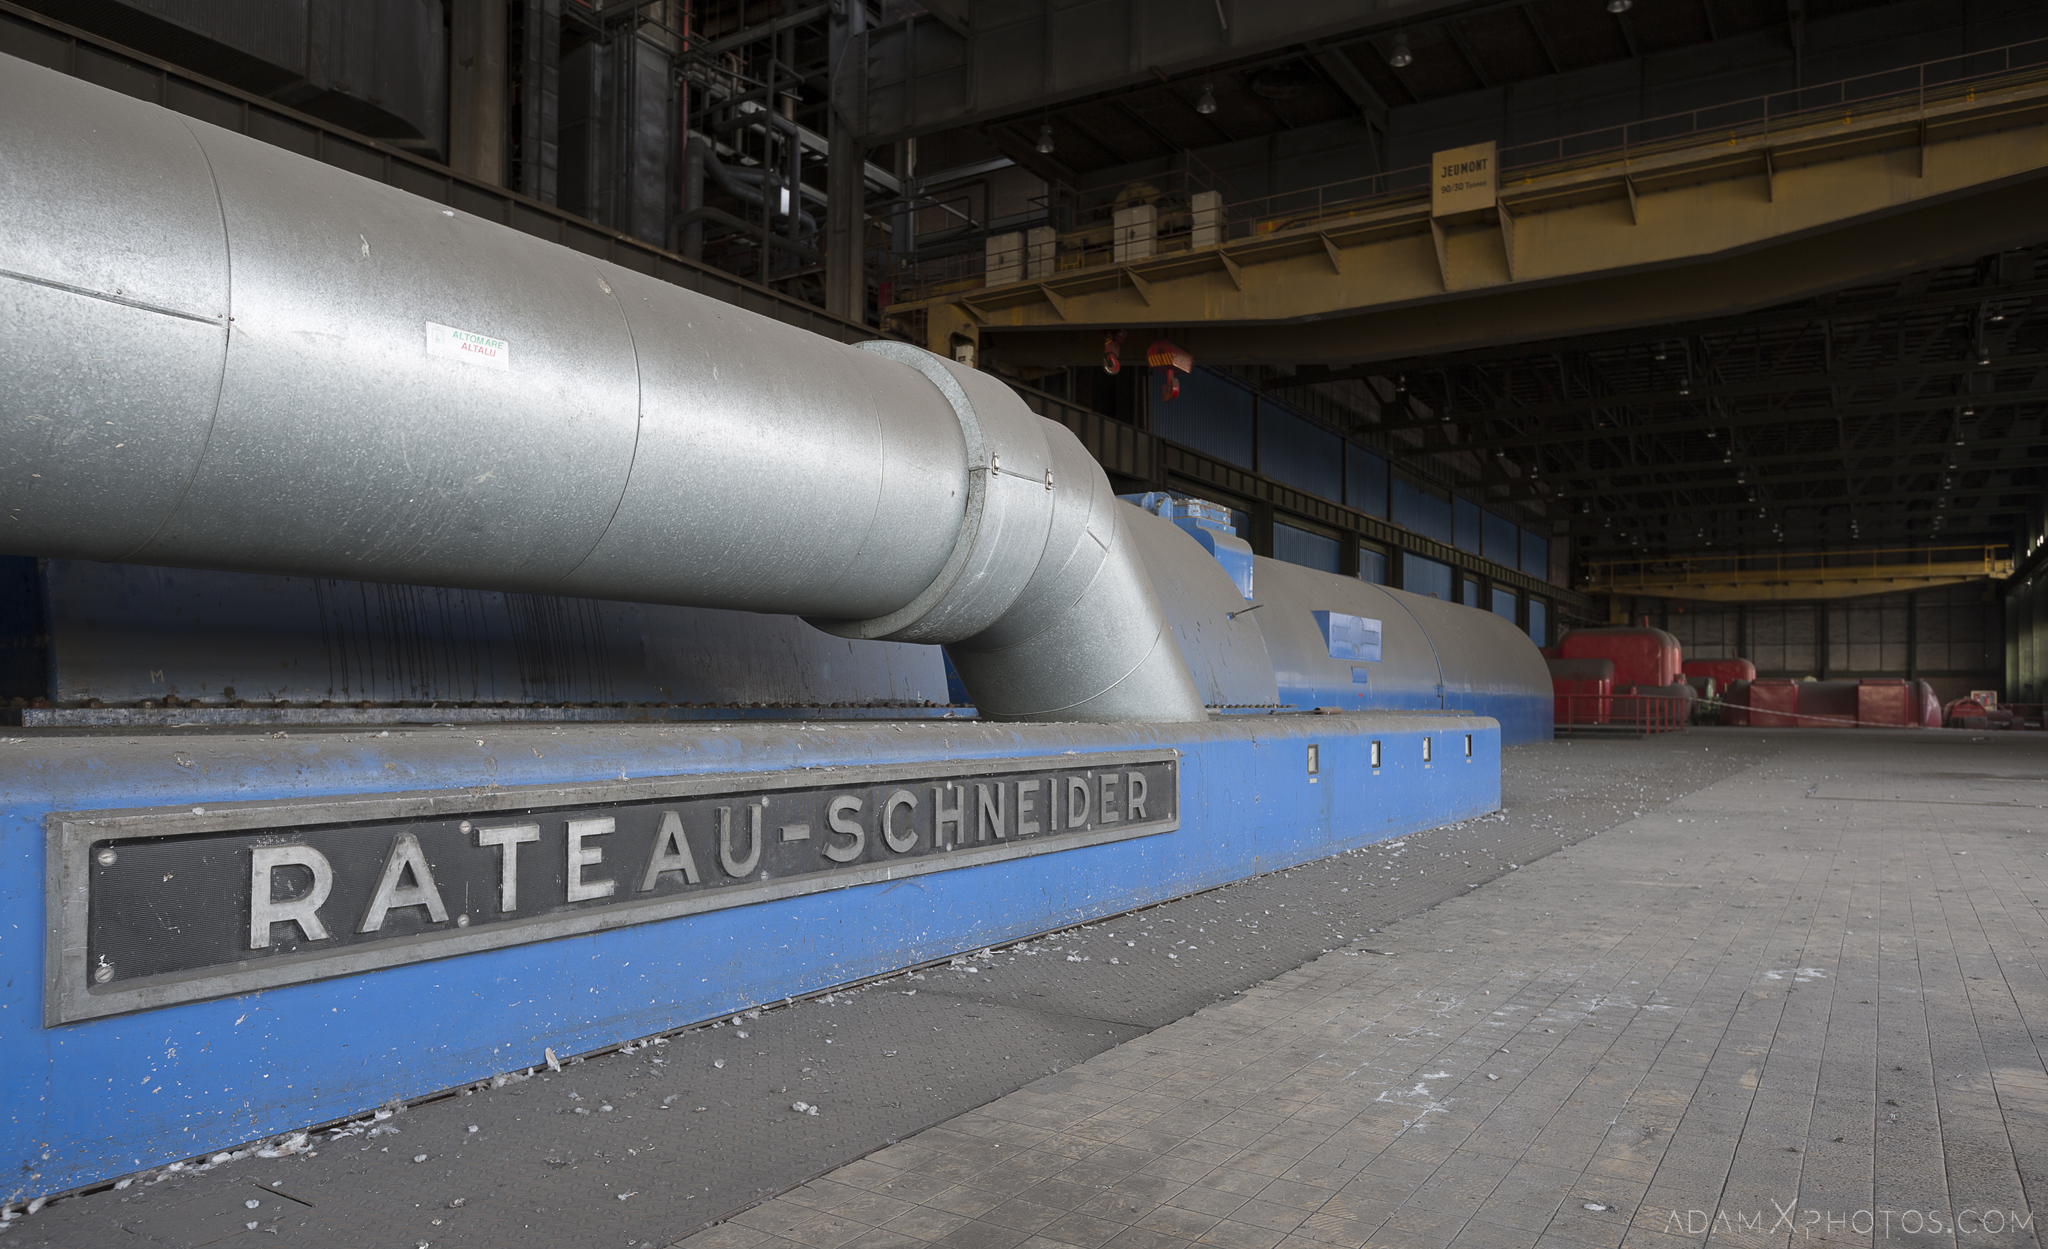 rateau schneider blue turbine hall Centrale de schneider powerplant power plant industrial industy Adam X Urban Exploration France Access 2017 Abandoned decay lost forgotten derelict location creepy haunting eerie